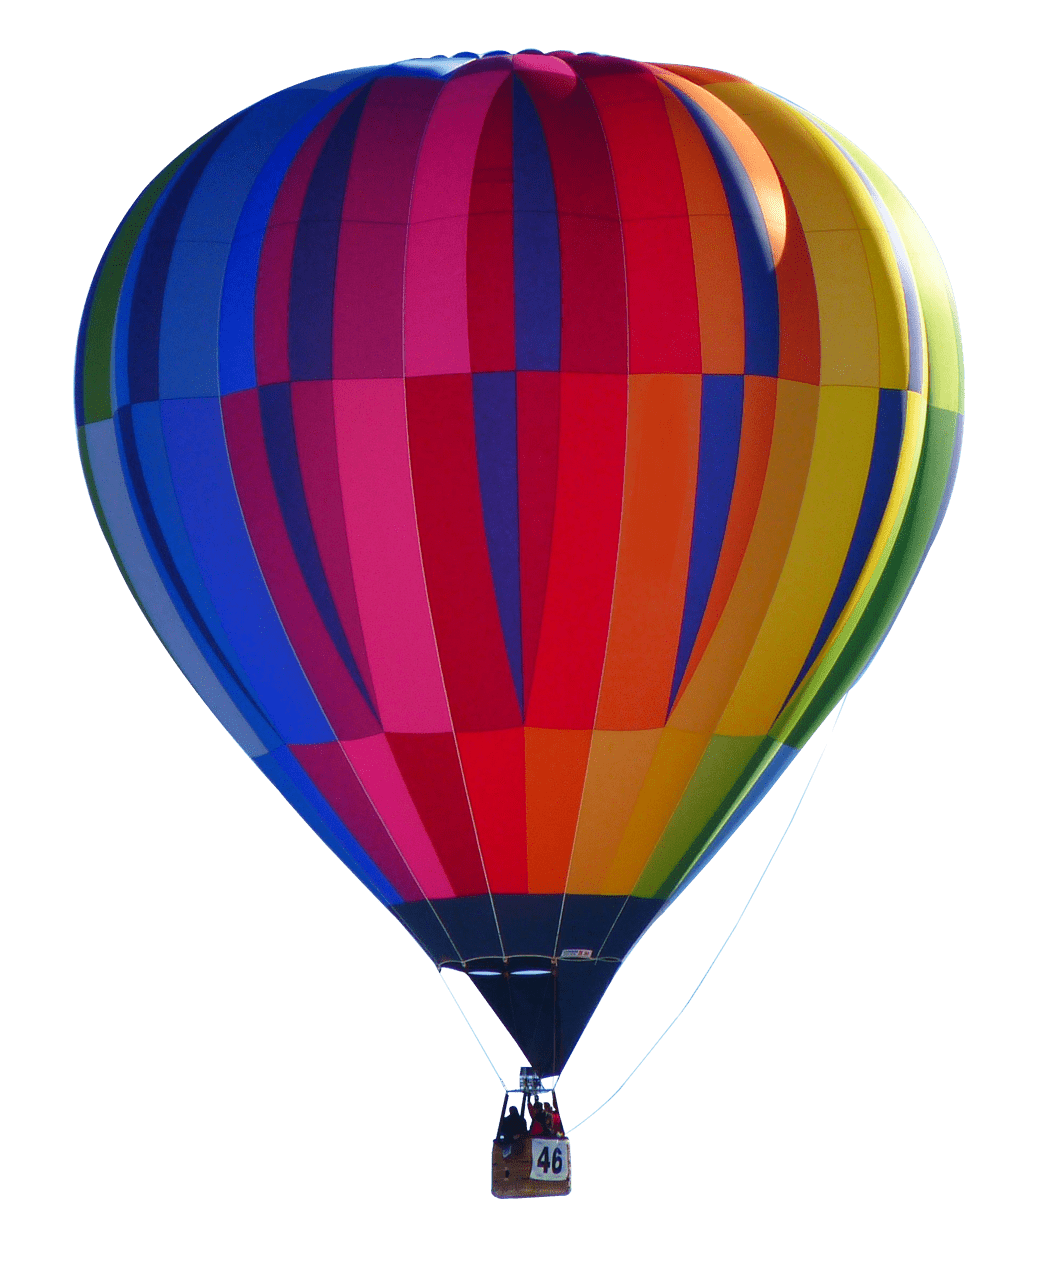 Colourful stickpng. Hot air balloon png transparent background picture library